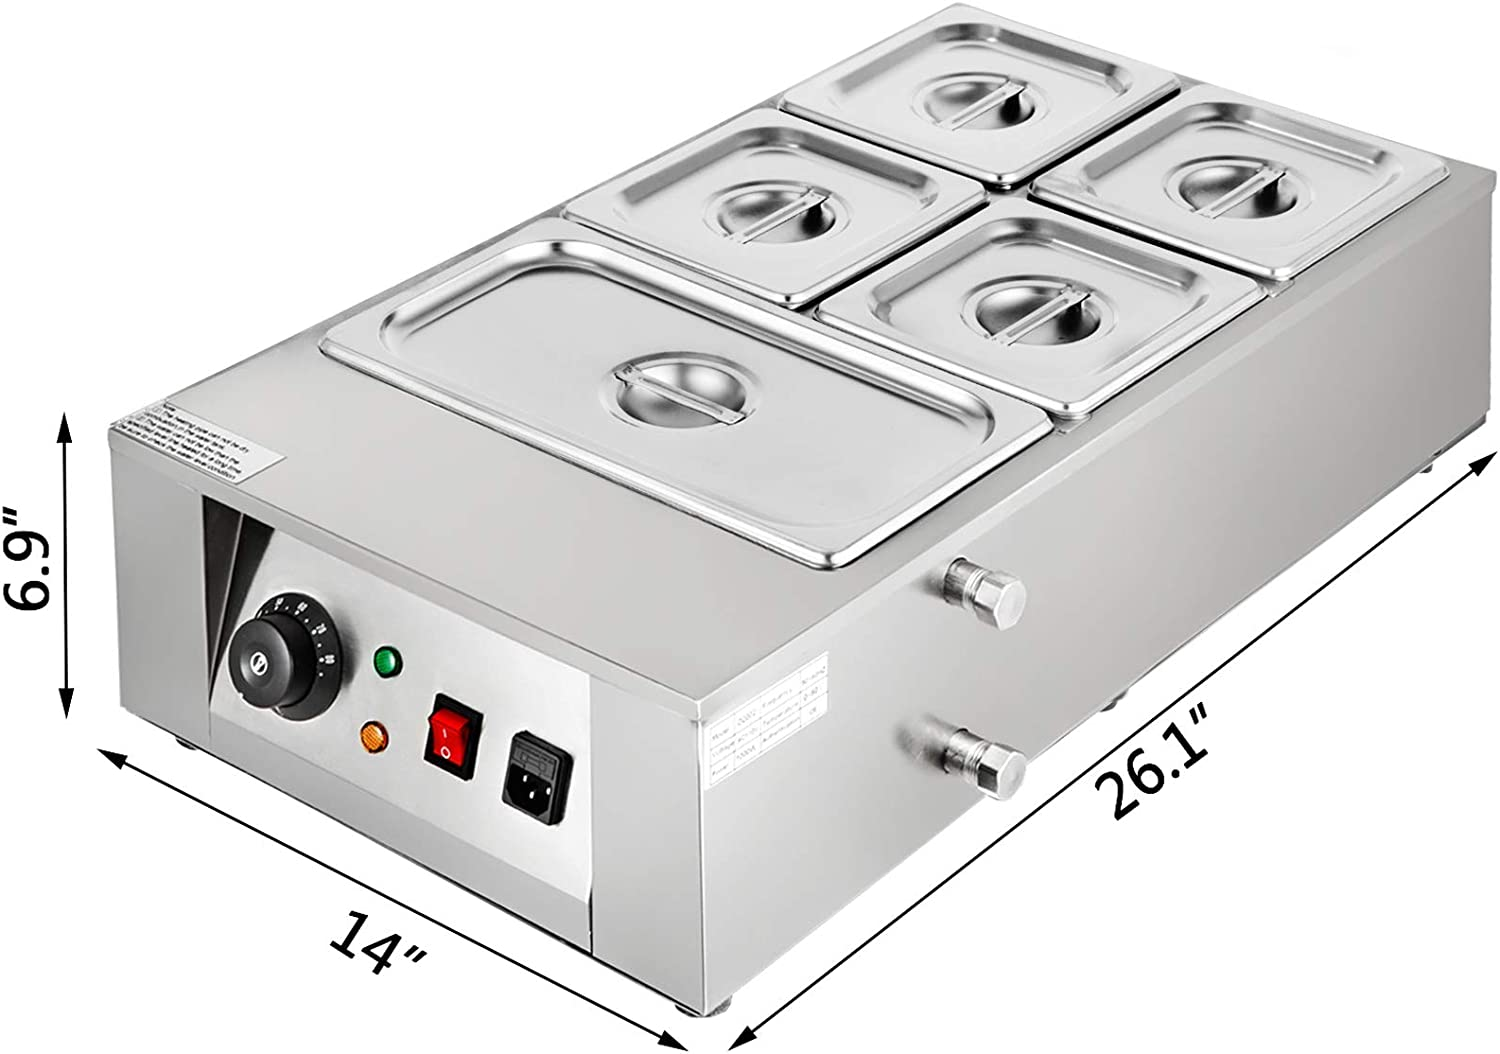 Happybuy Electric Chocolate Melting Pot Machine 6 Tanks Commercial Electric Chocolate Heater 26.45lbs Capacity Digital Control Electric Chocolate Melter for Chocolate Shops or Home